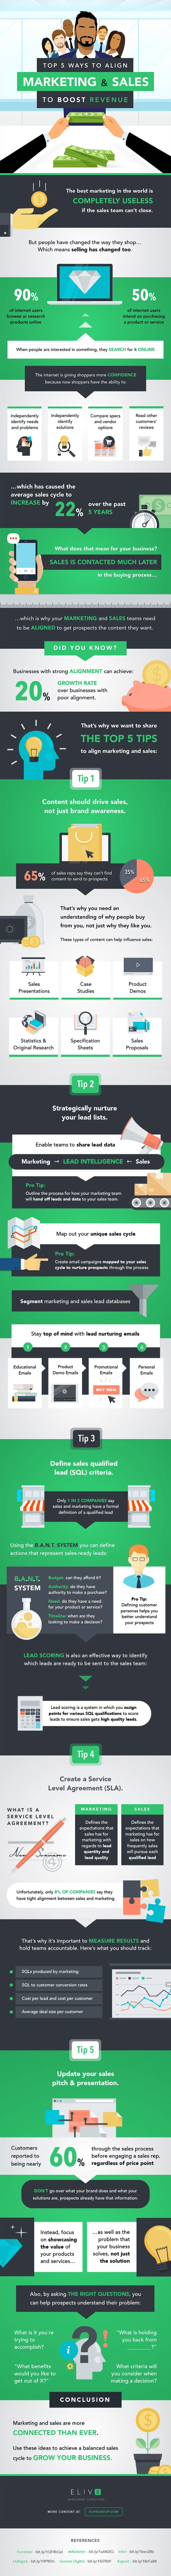 How-To Align Marketing & Sales to Boost Revenue (Infographic)